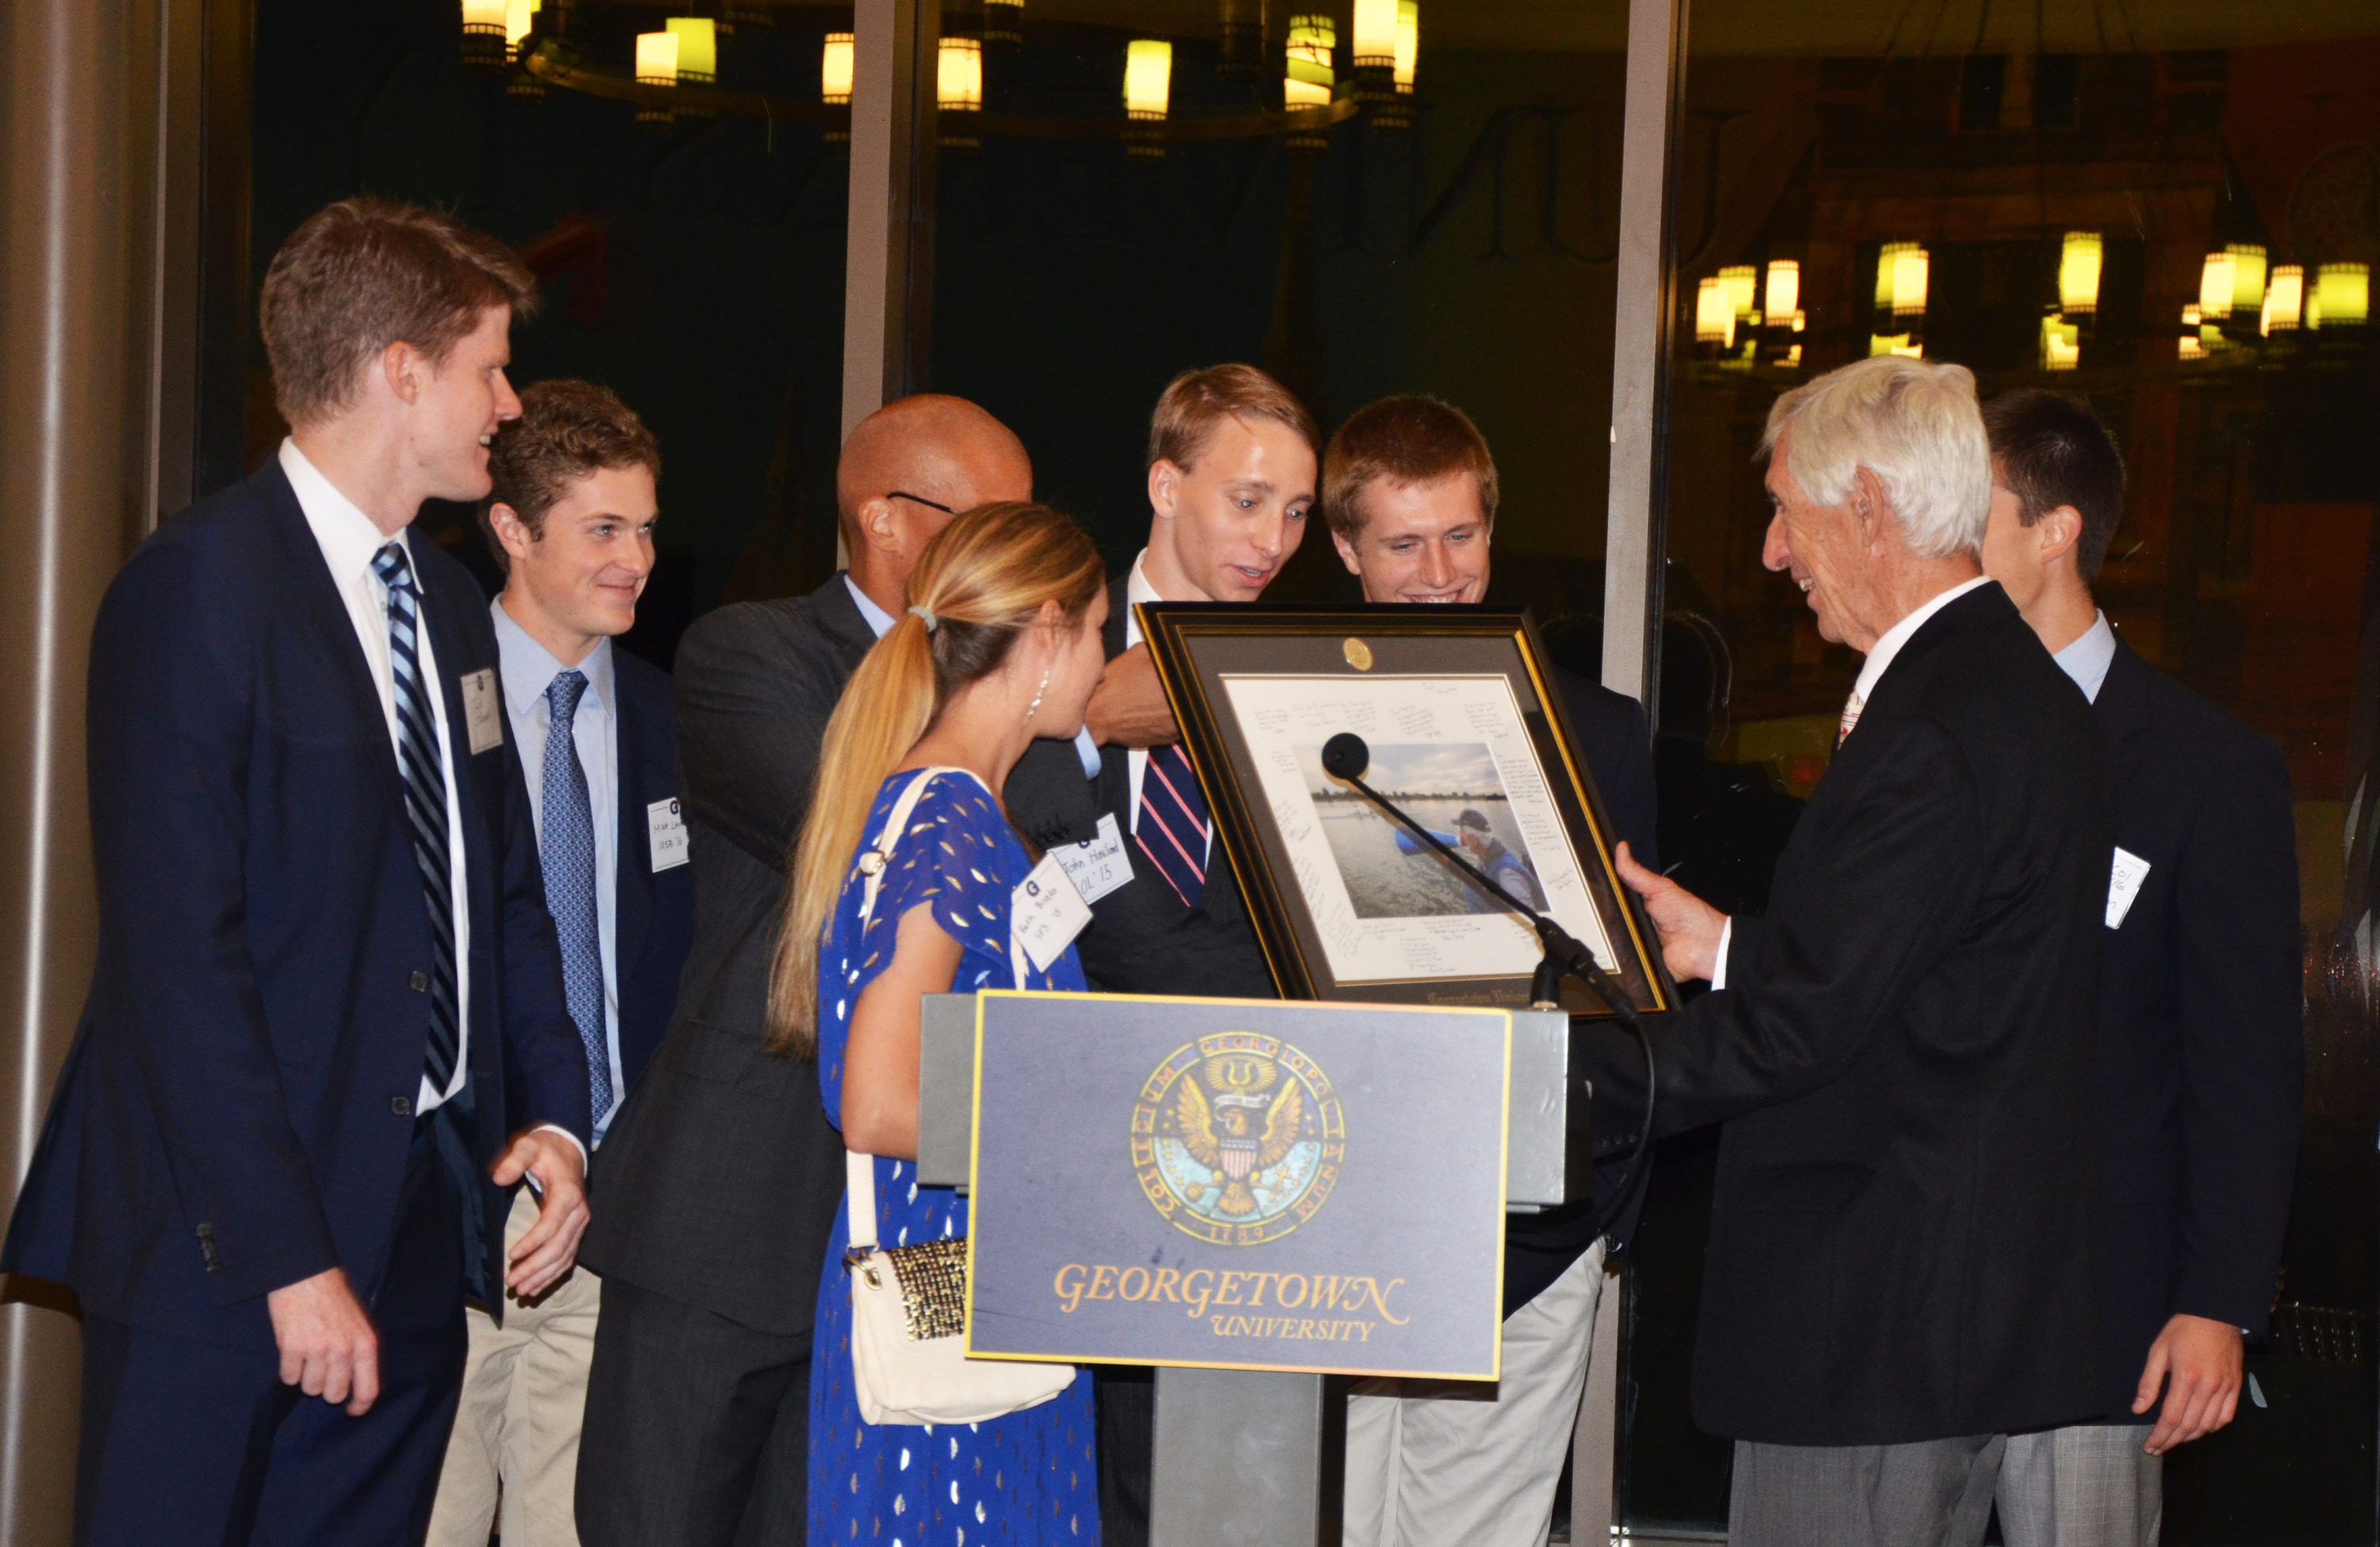 Tony Johnson receives his gift from the Georgetown Rowing Class of 2015.